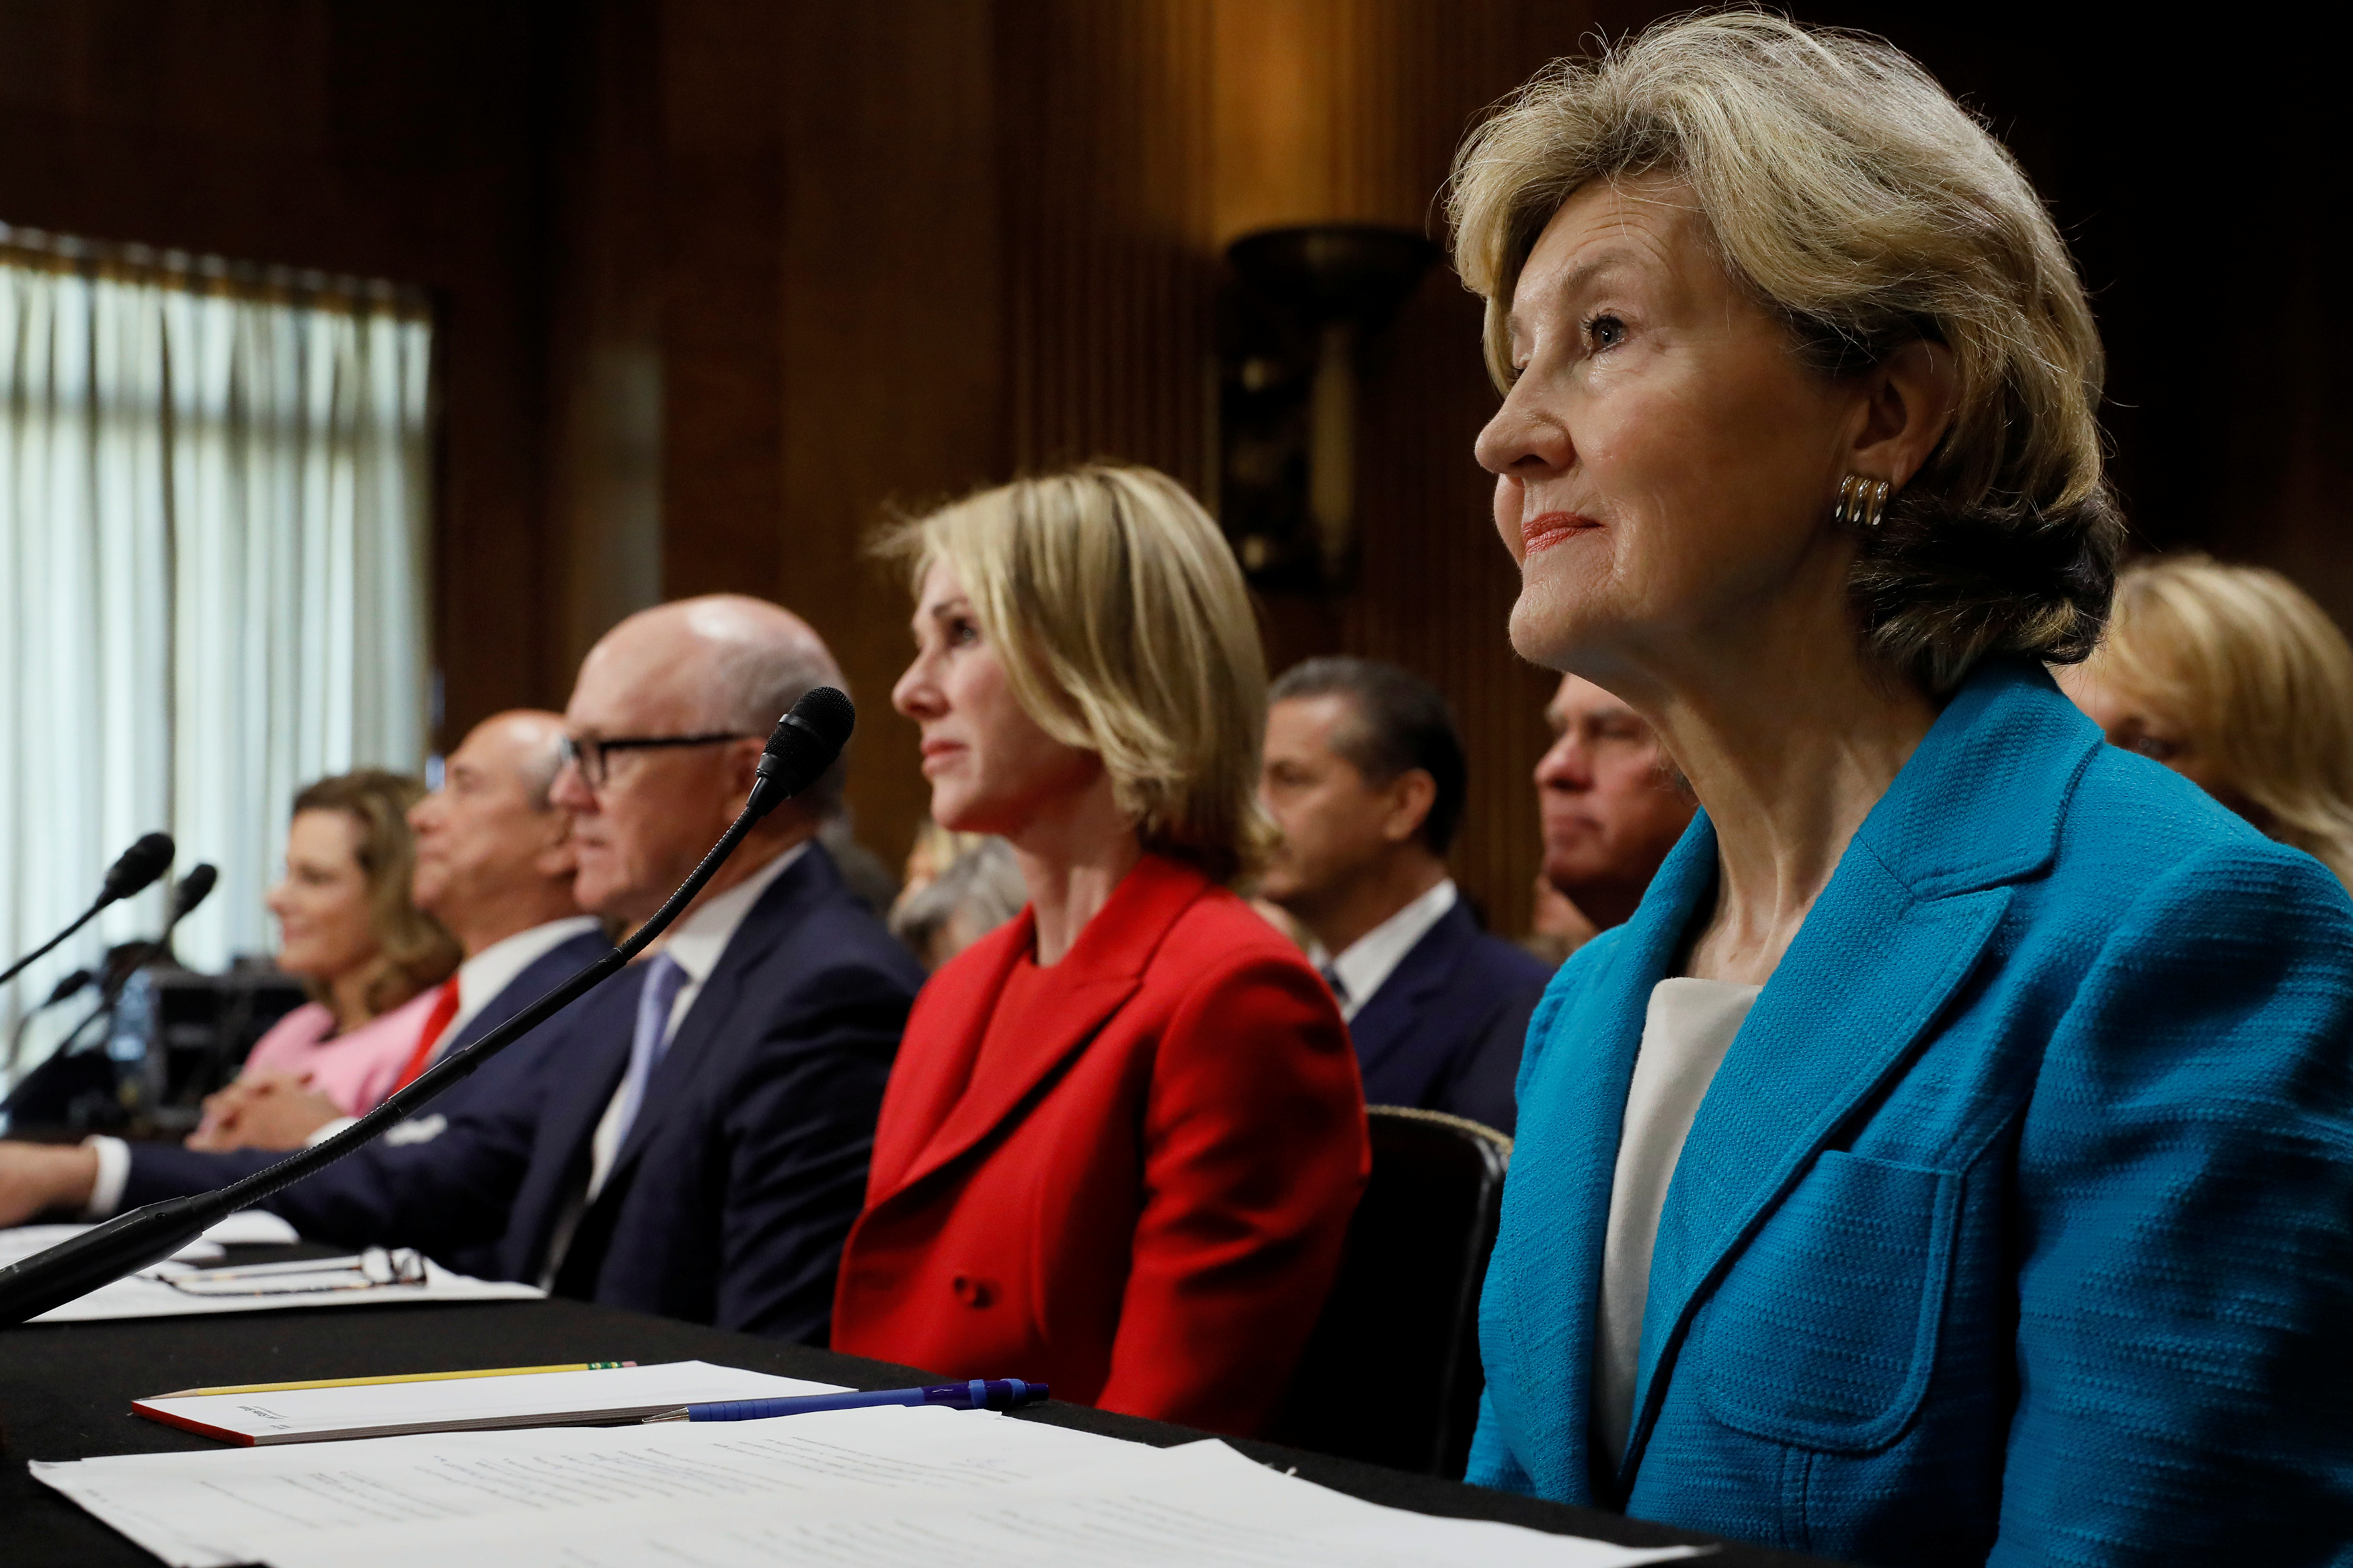 """U.S. President Donald Trump's nominee for ambassador to NATO Kay Bailey Hutchison (R), flanked by (L-R) nominee for ambassador to Singapore K.T. McFarland, nominee for ambassador to Italy Lewis Eisenberg, nominee for ambassador to Great Britain Robert Wood """"Woody"""" Johnson and nominee for ambassador to Canada Kelly Knight Craft, testifies at the Senate Foreign Relations Committee hearing on their nominations on Capitol Hill in Washington, U.S. July 20, 2017. REUTERS/Jonathan Ernst - RTX3C90X"""